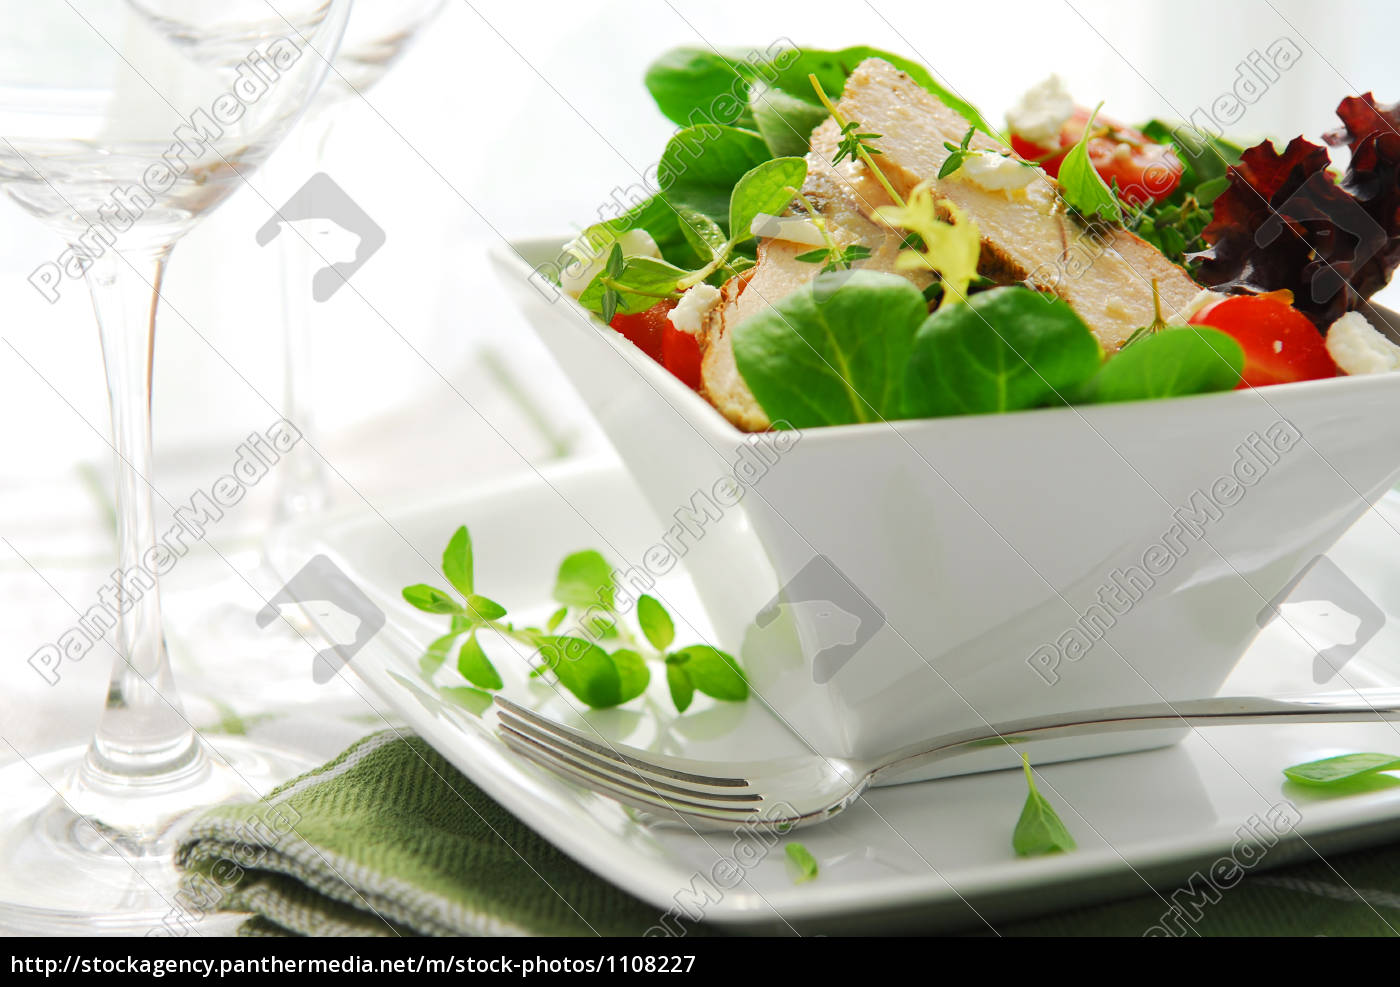 chicken, grilled, tomato, lettuce, salad, healthy - 1108227